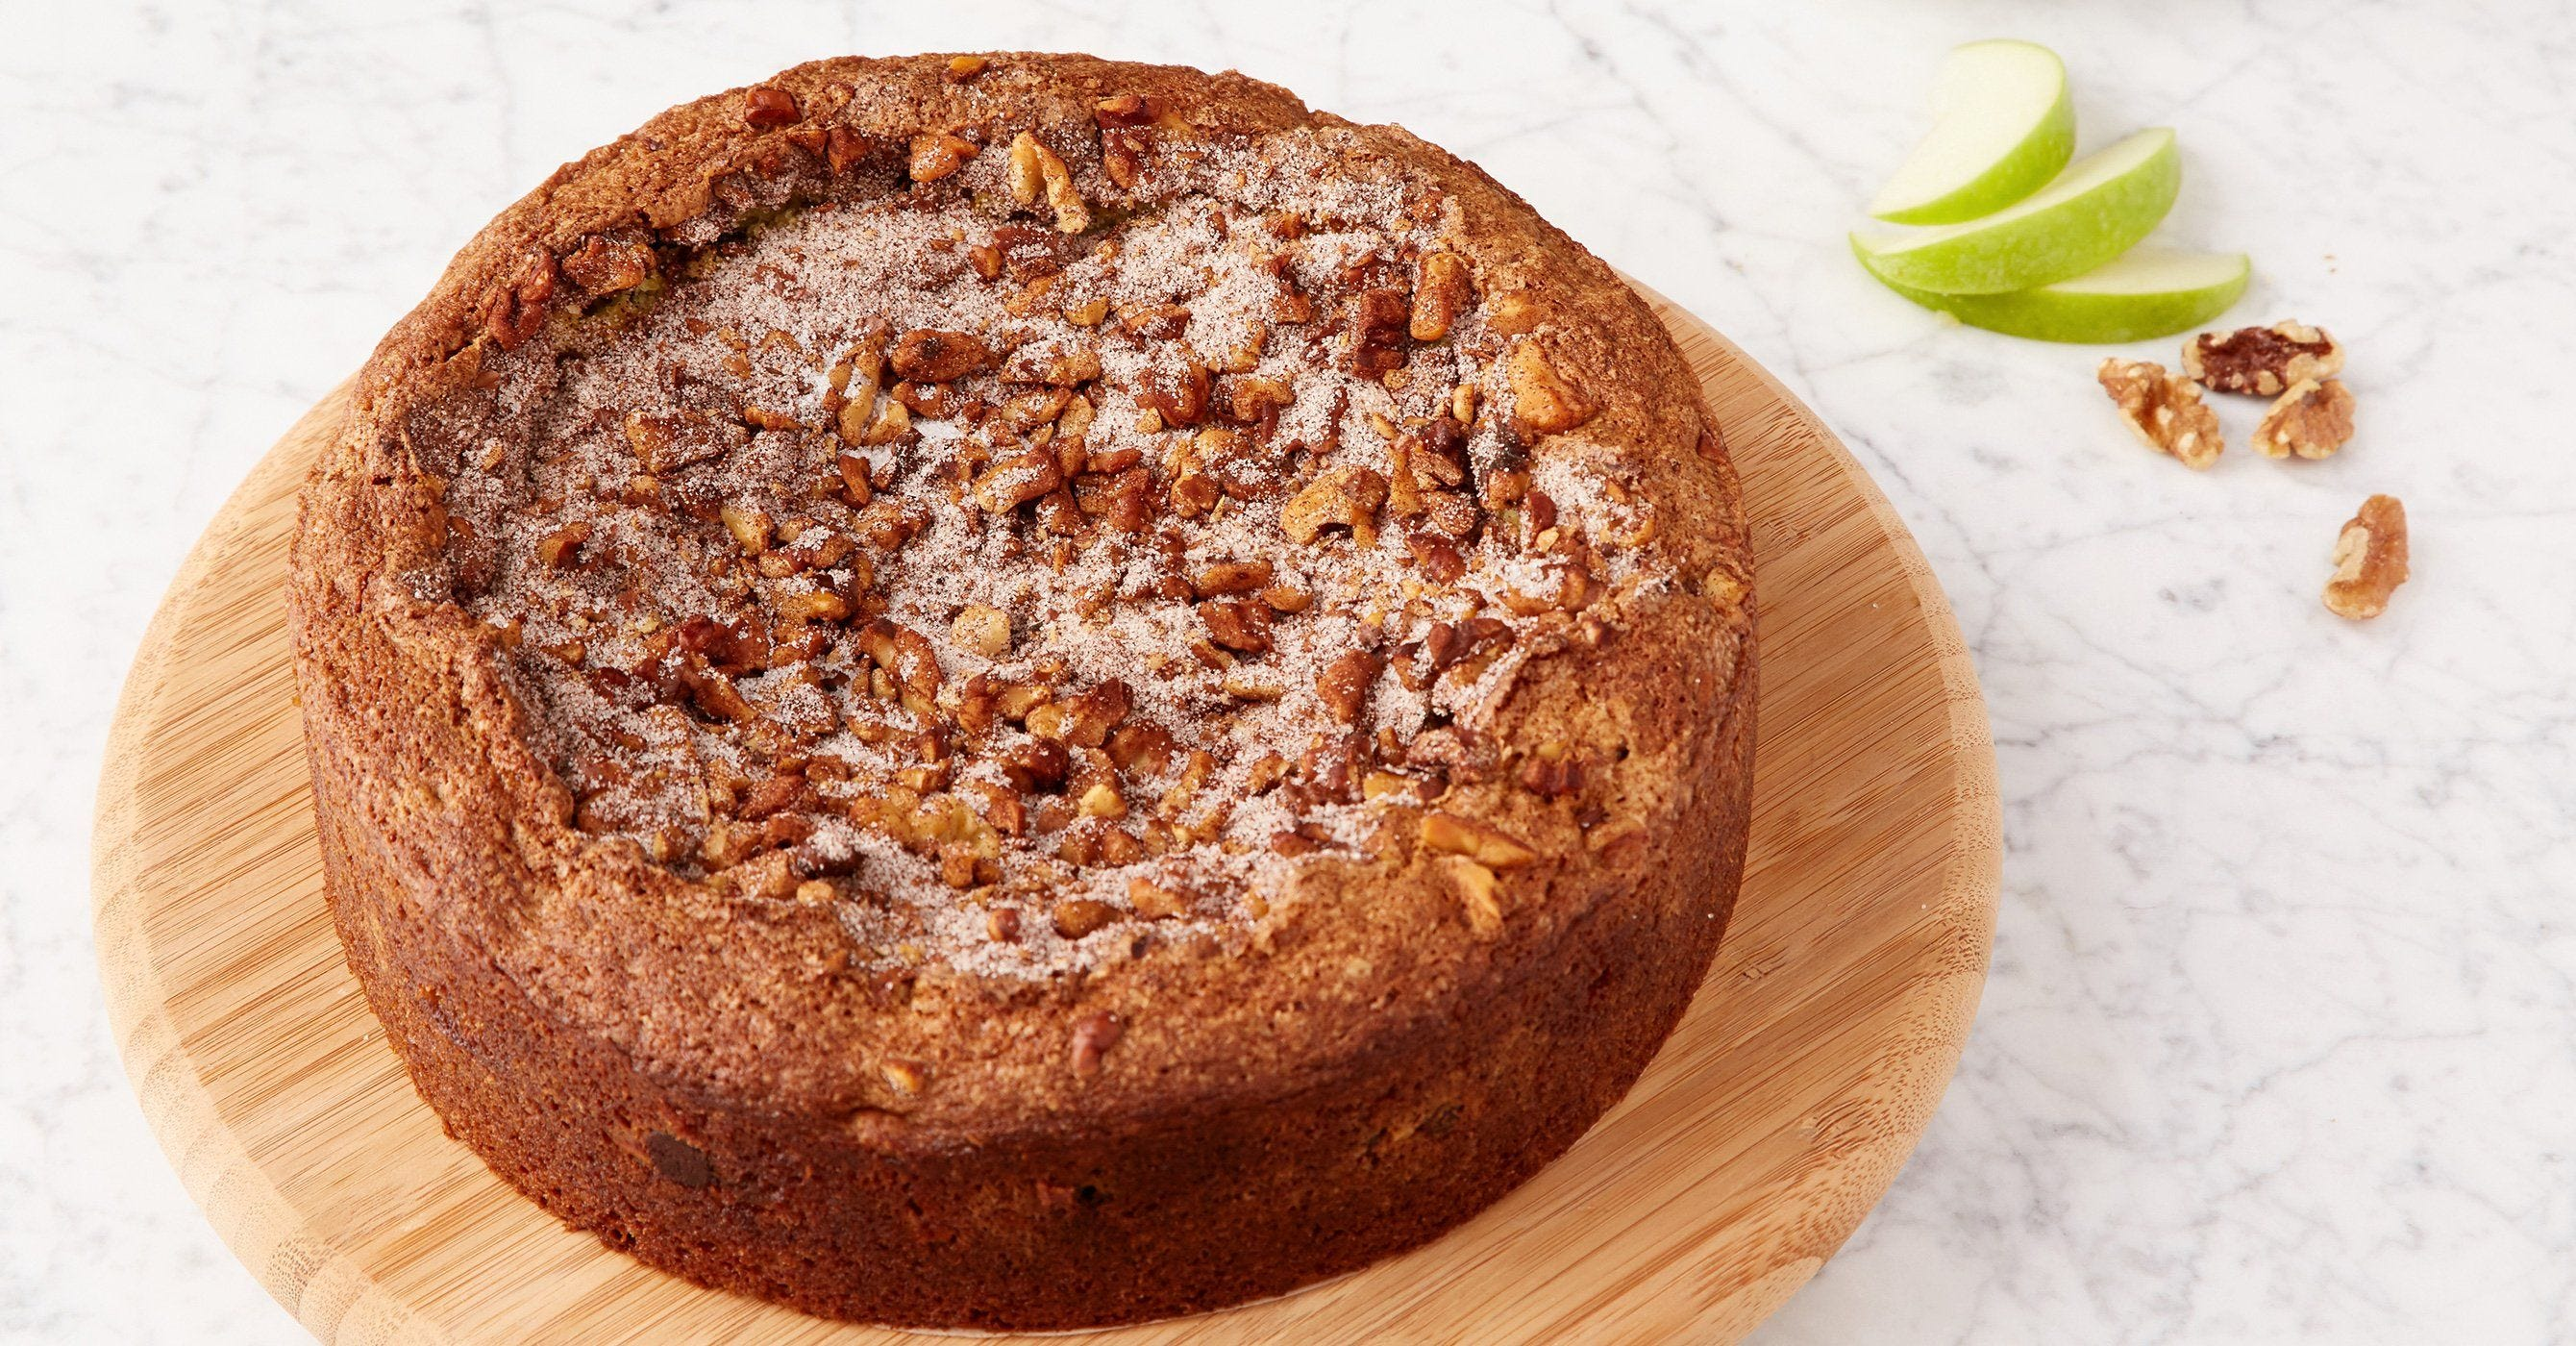 Coffee Cake with Chocolate, Apple, and Walnuts recipe.